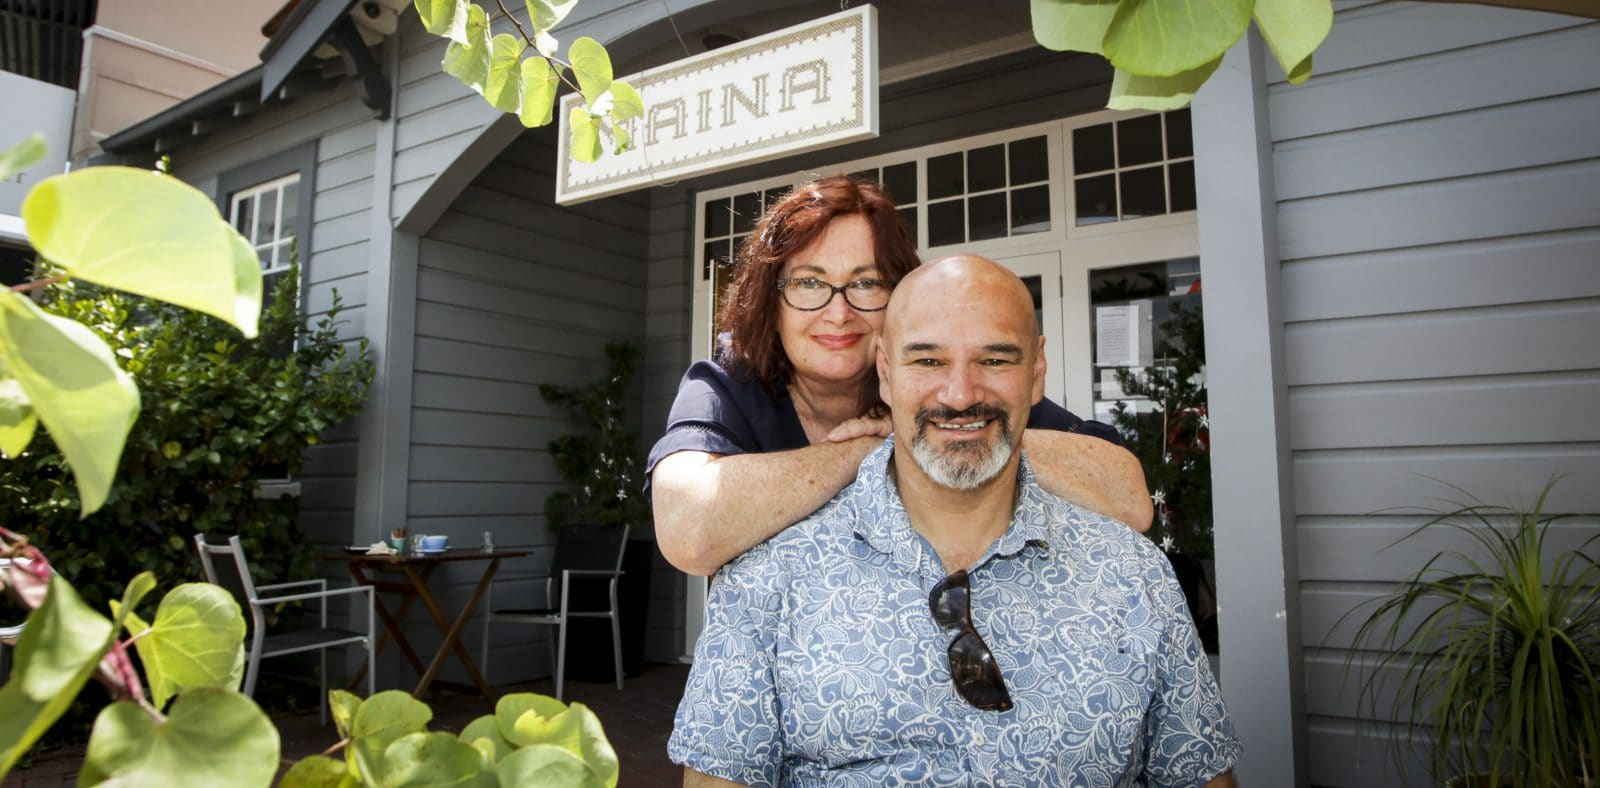 Maina café in Havelock North, owners Stu Best, and Katie Green, Regional Town Café at the 2018 Meadow Fresh New Zealand Café of the Year awards – Lower North Island Region. Havelock North. 24th December 2017 Photographer Paul Taylor Hawke's Bay Today